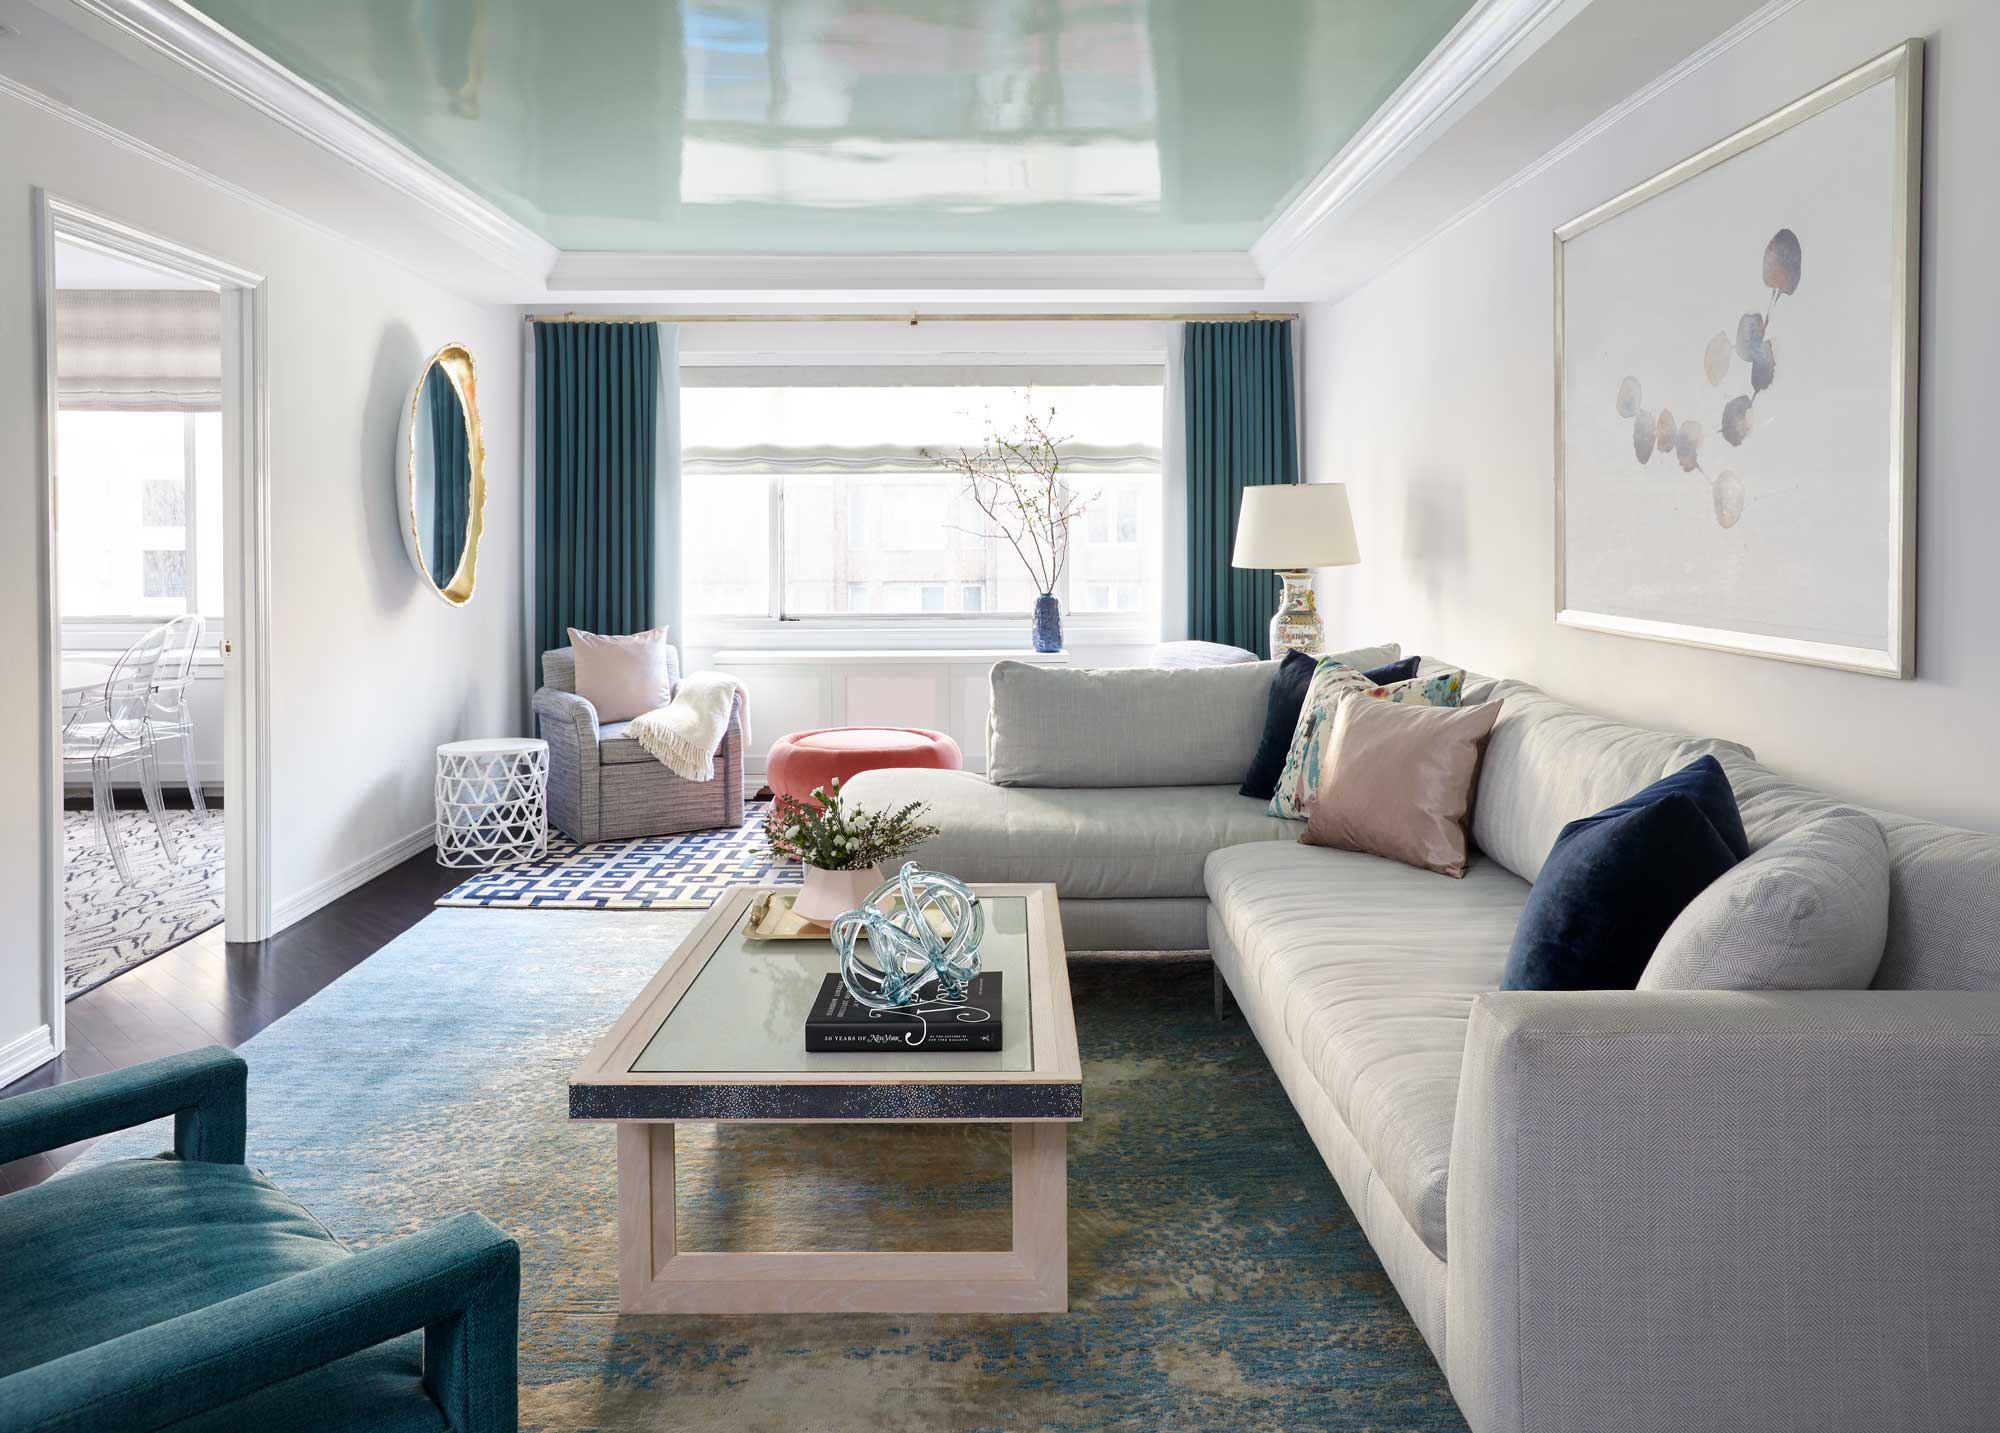 brooke moorhead design lenox hill playful living room